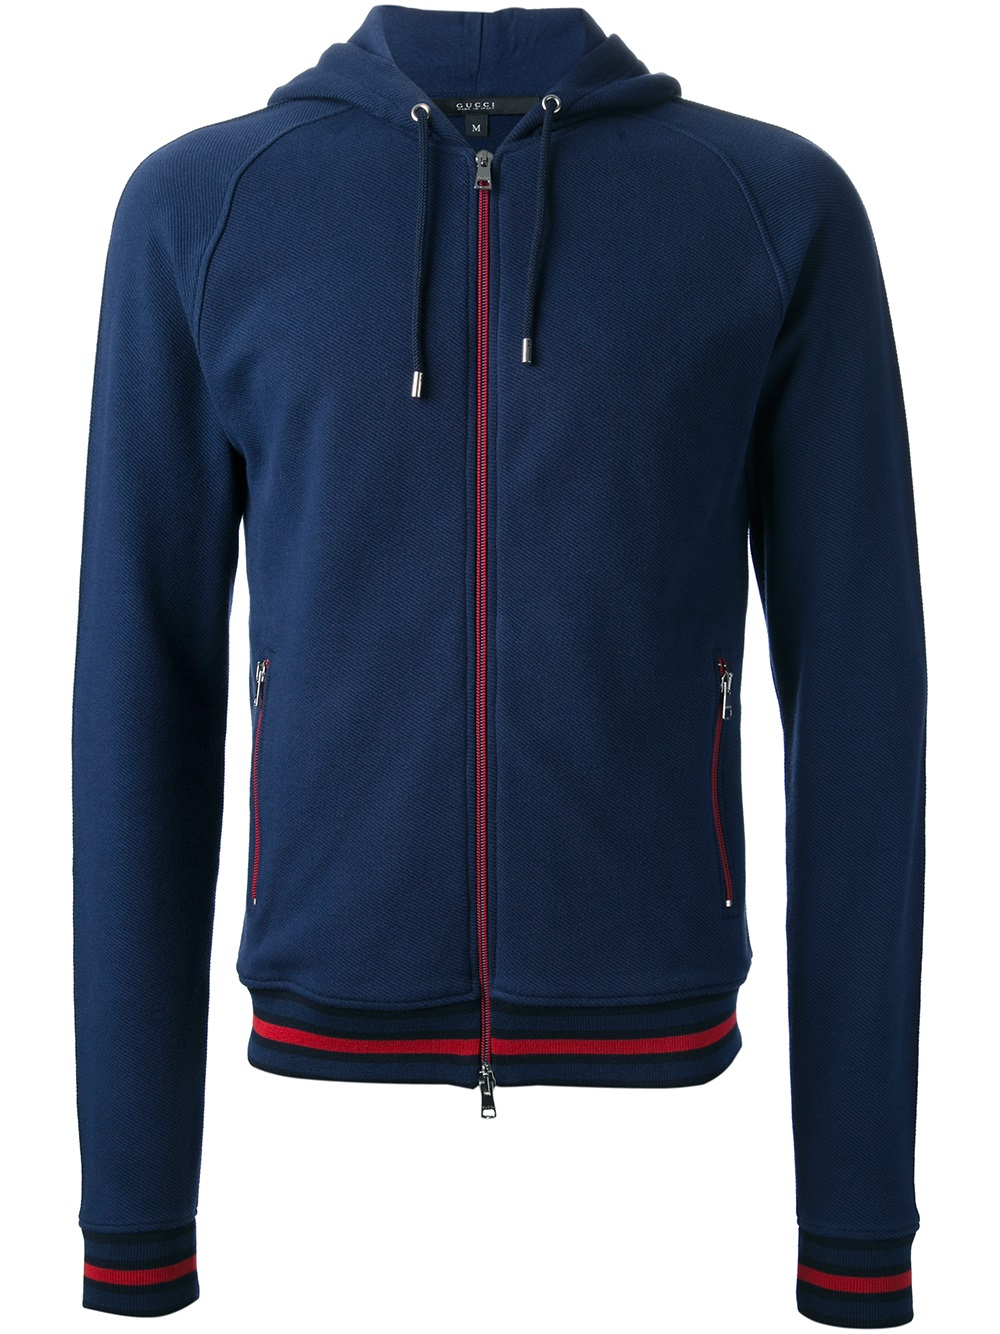 gucci zip hoodie in blue for men lyst. Black Bedroom Furniture Sets. Home Design Ideas